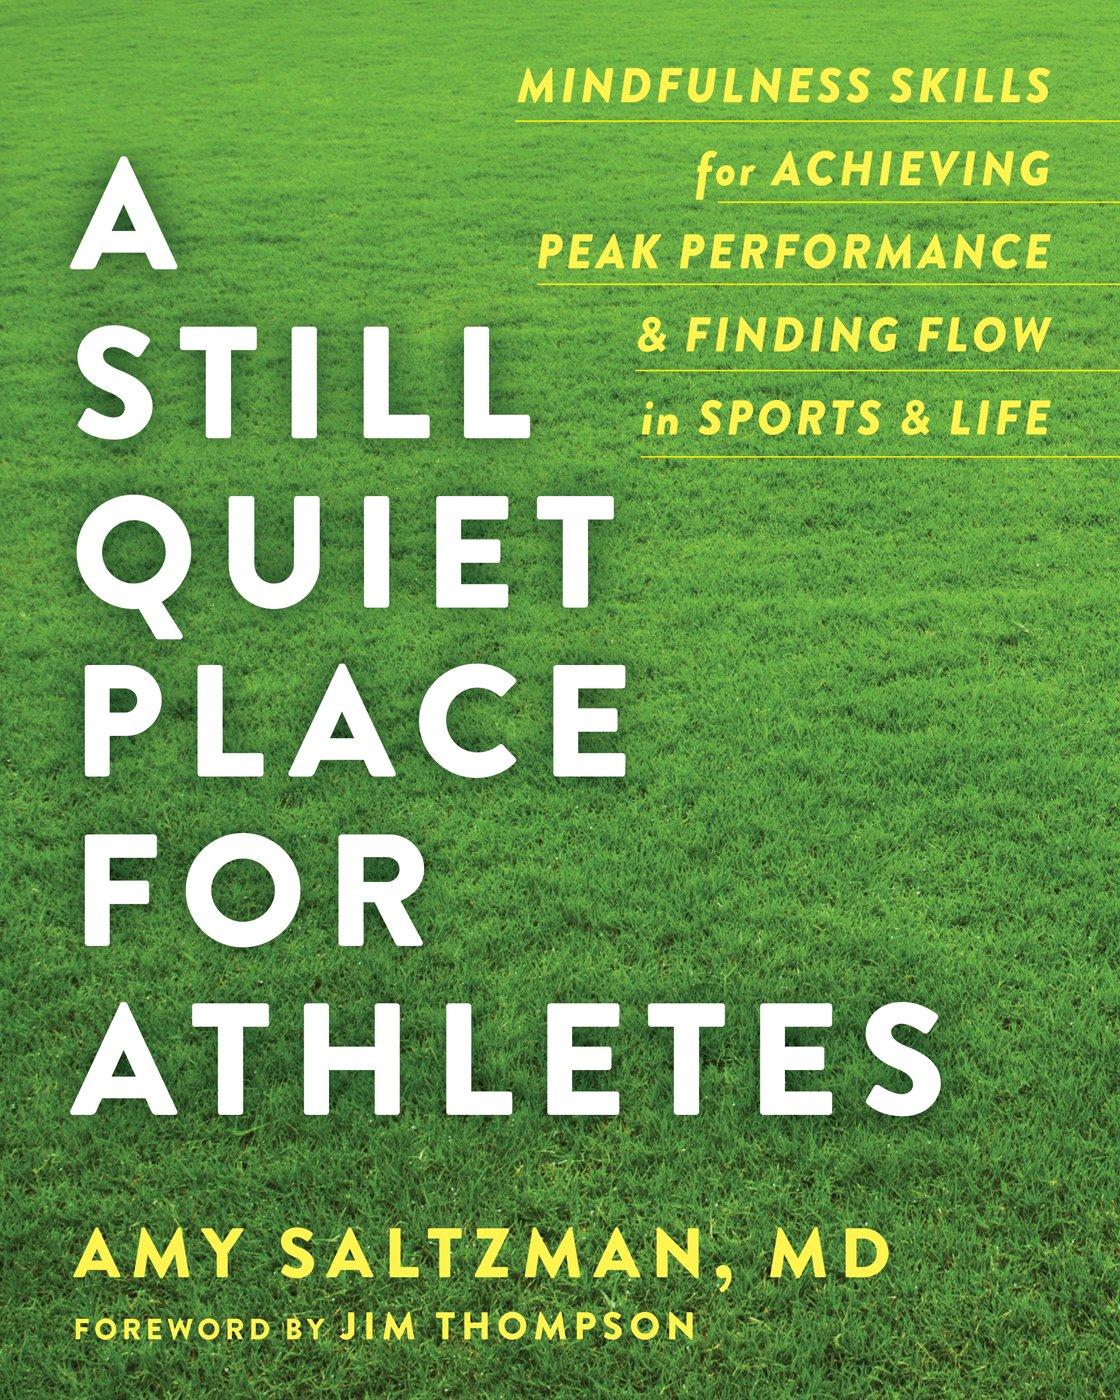 A Still Quiet Place for Athletes: Mindfulness Skills for Achieving Peak Performance and Finding Flow in Sports and Life by New Harbinger Publications